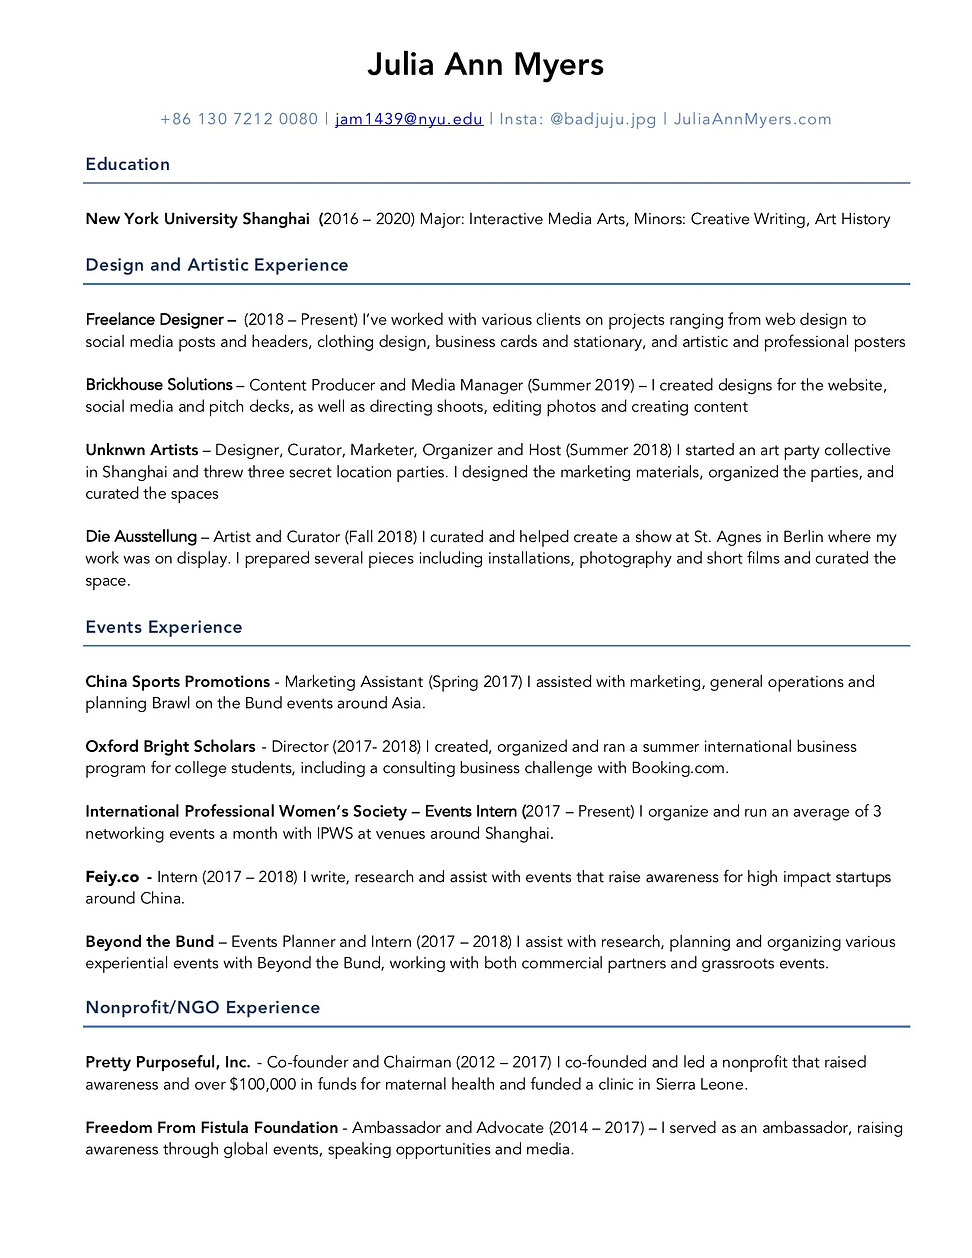 Julia Myers short resume 18 1.jpg